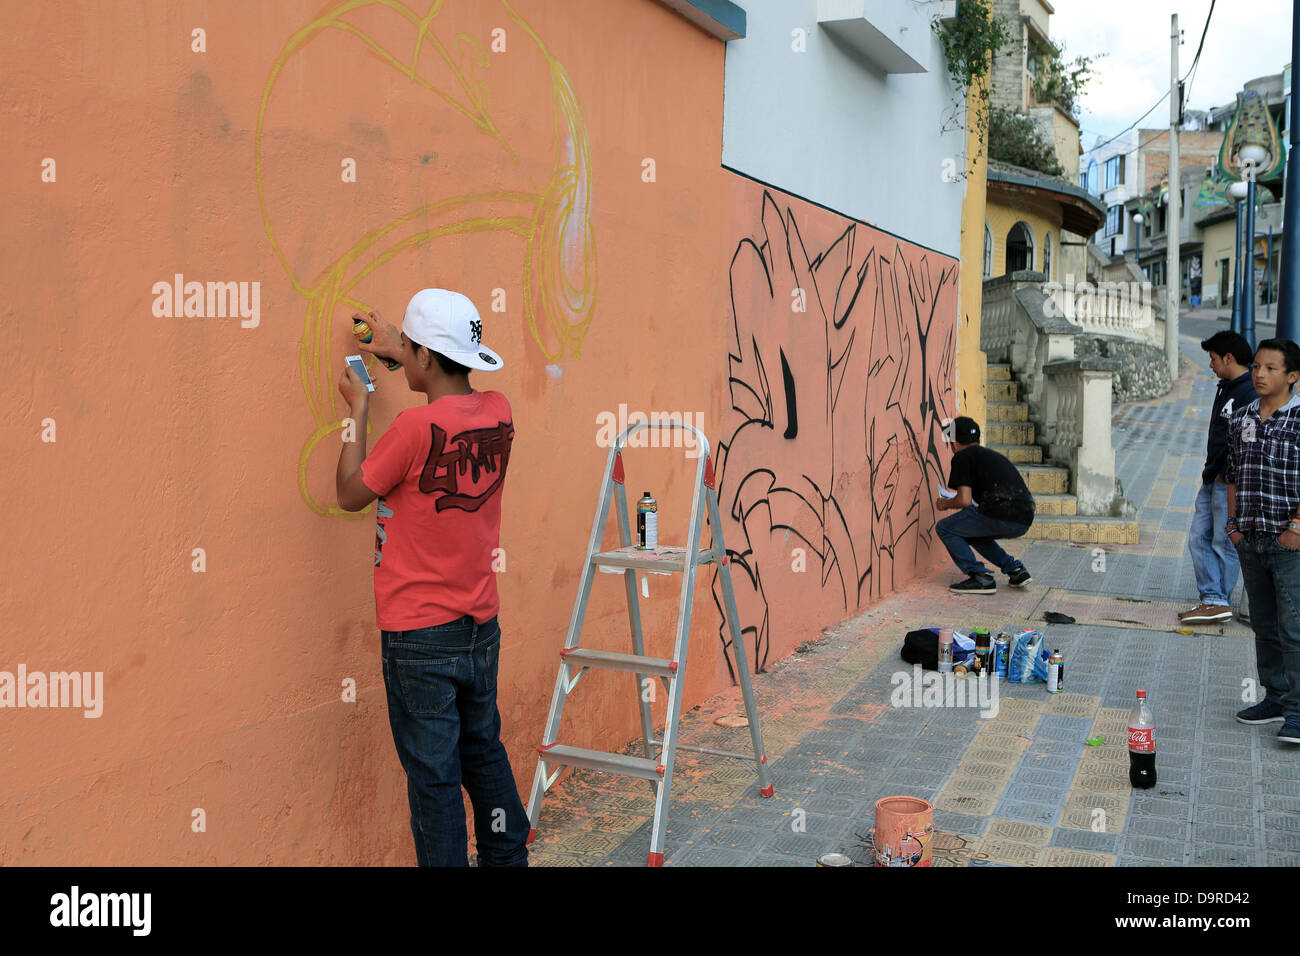 Teenage Street Artists Creating Graffiti With Local Authority Permission In The Streets Of Otavalo Ecuador